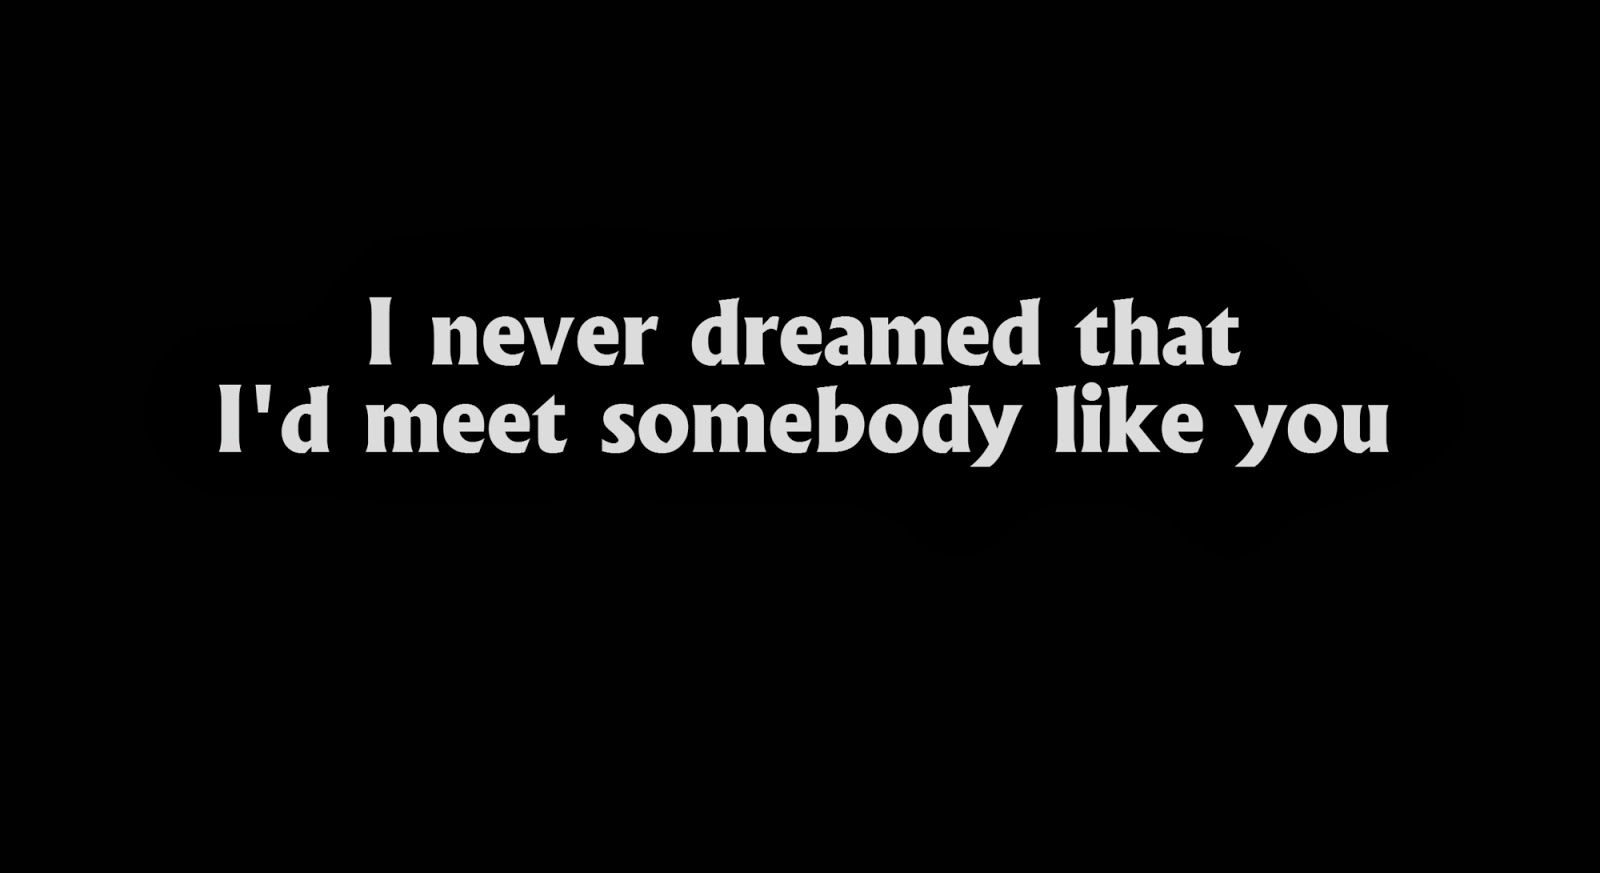 I never dreamed that I'd meet somebody like you.